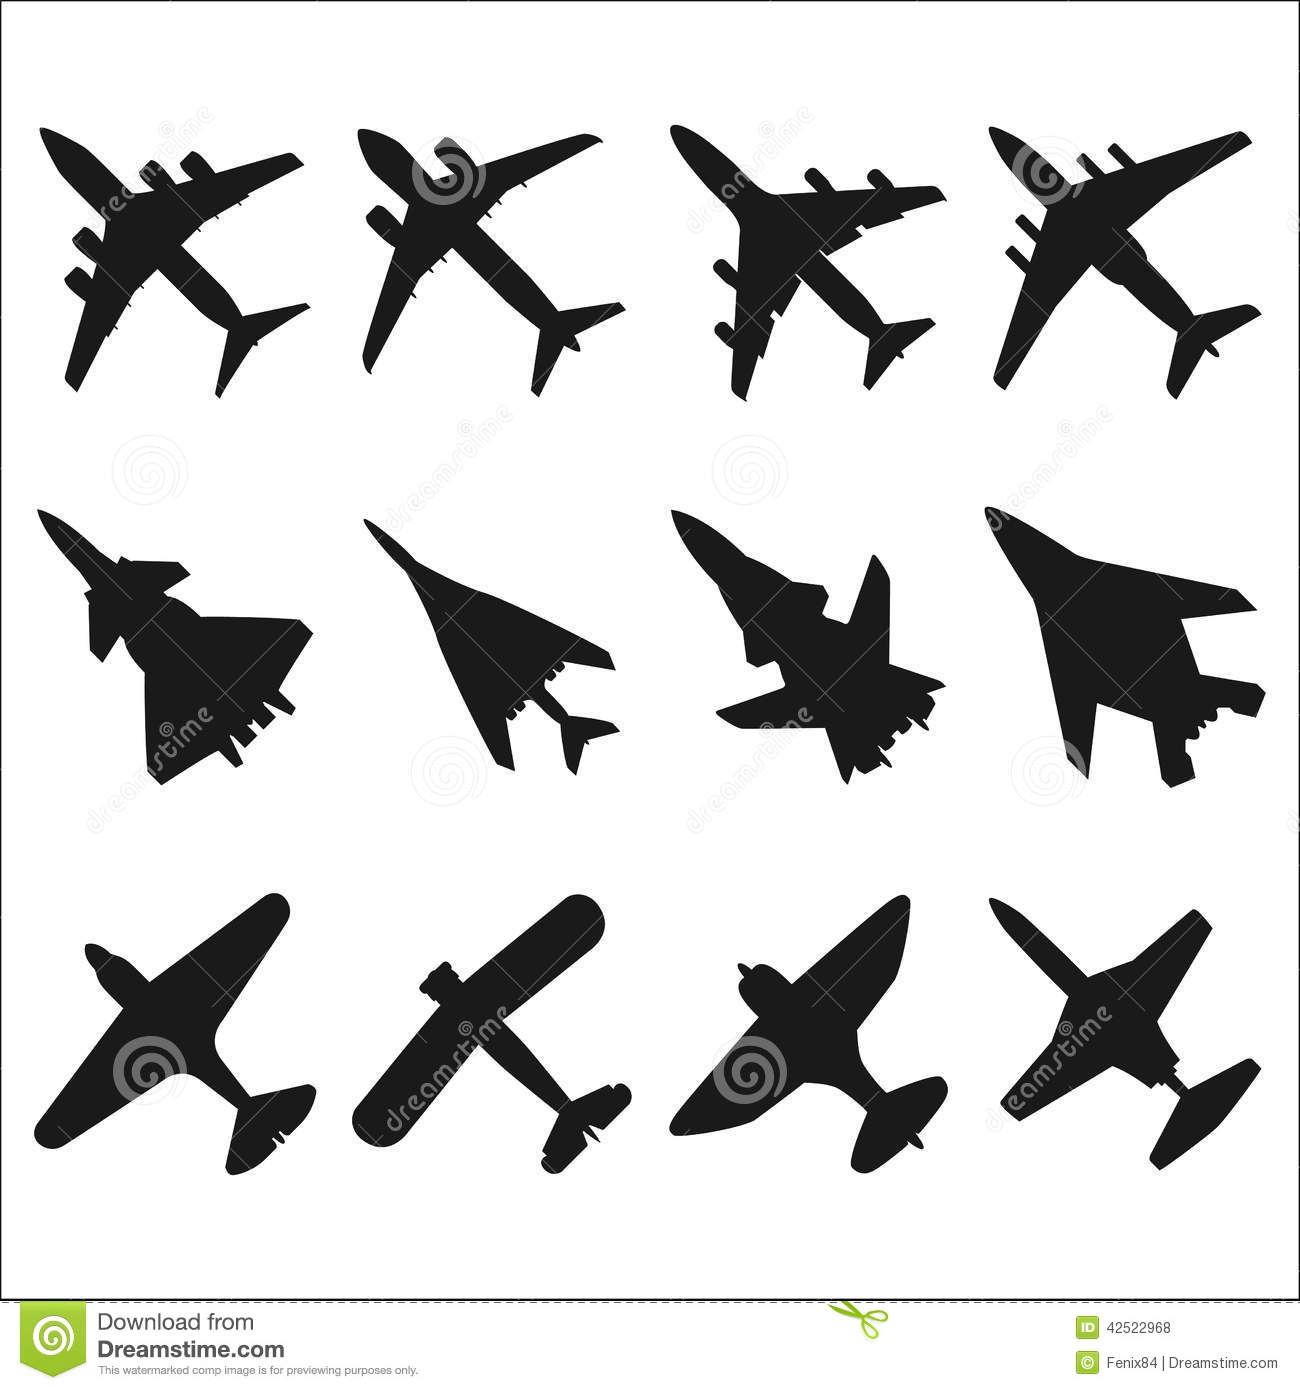 Silhouettes of aircraft of various types: passenger, cargo, military ...